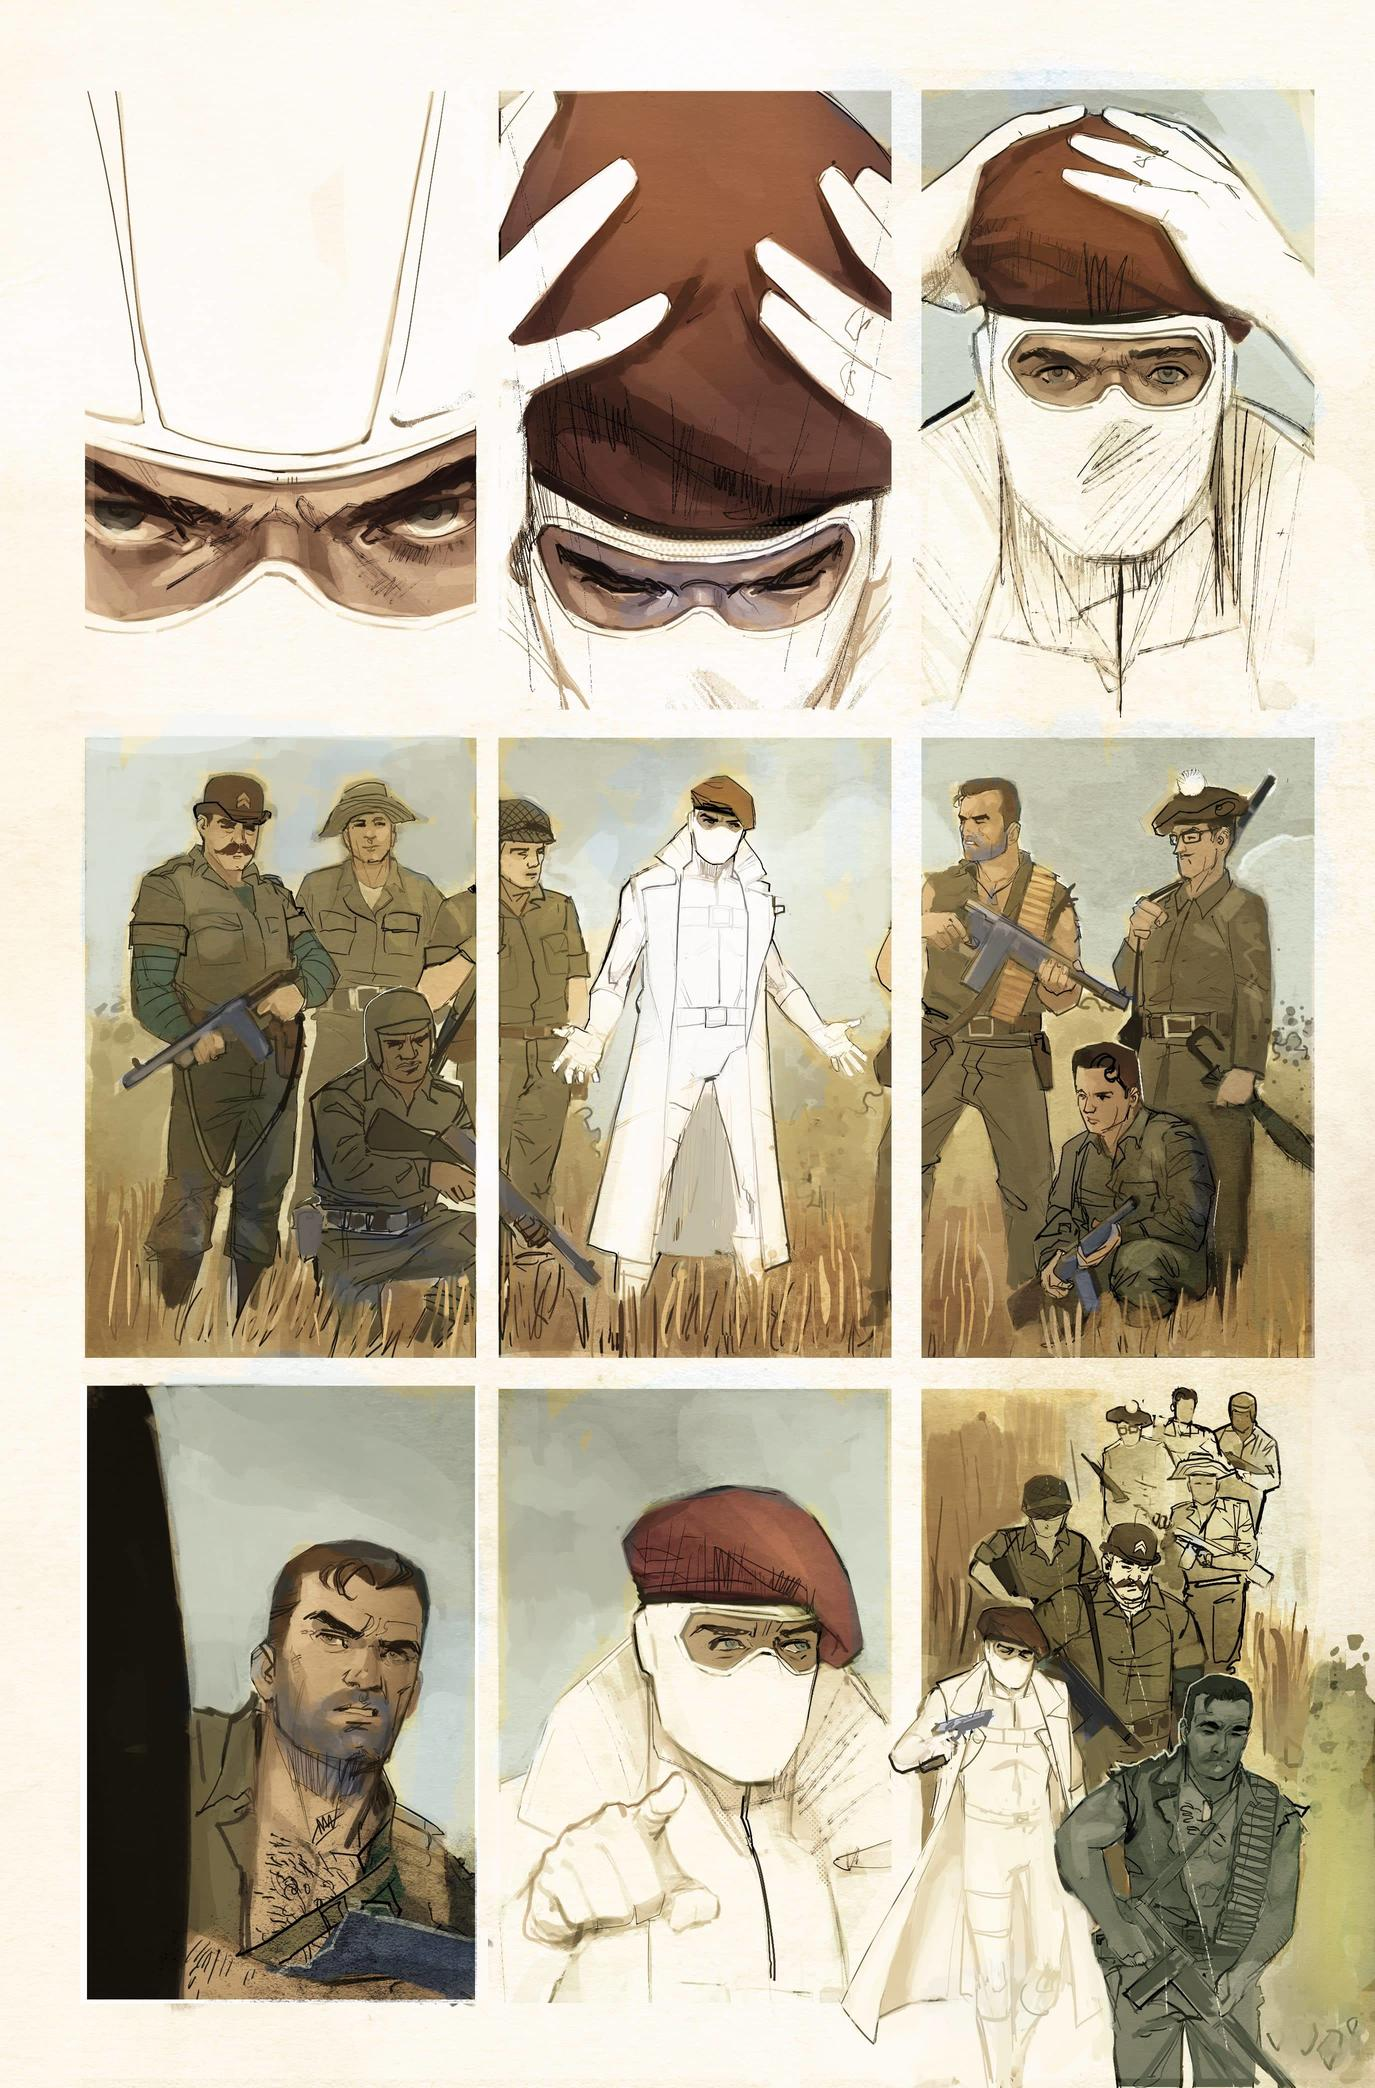 GIANT-SIZE X-MEN: FANTOMEX #1 preview interiors by Rod Reis